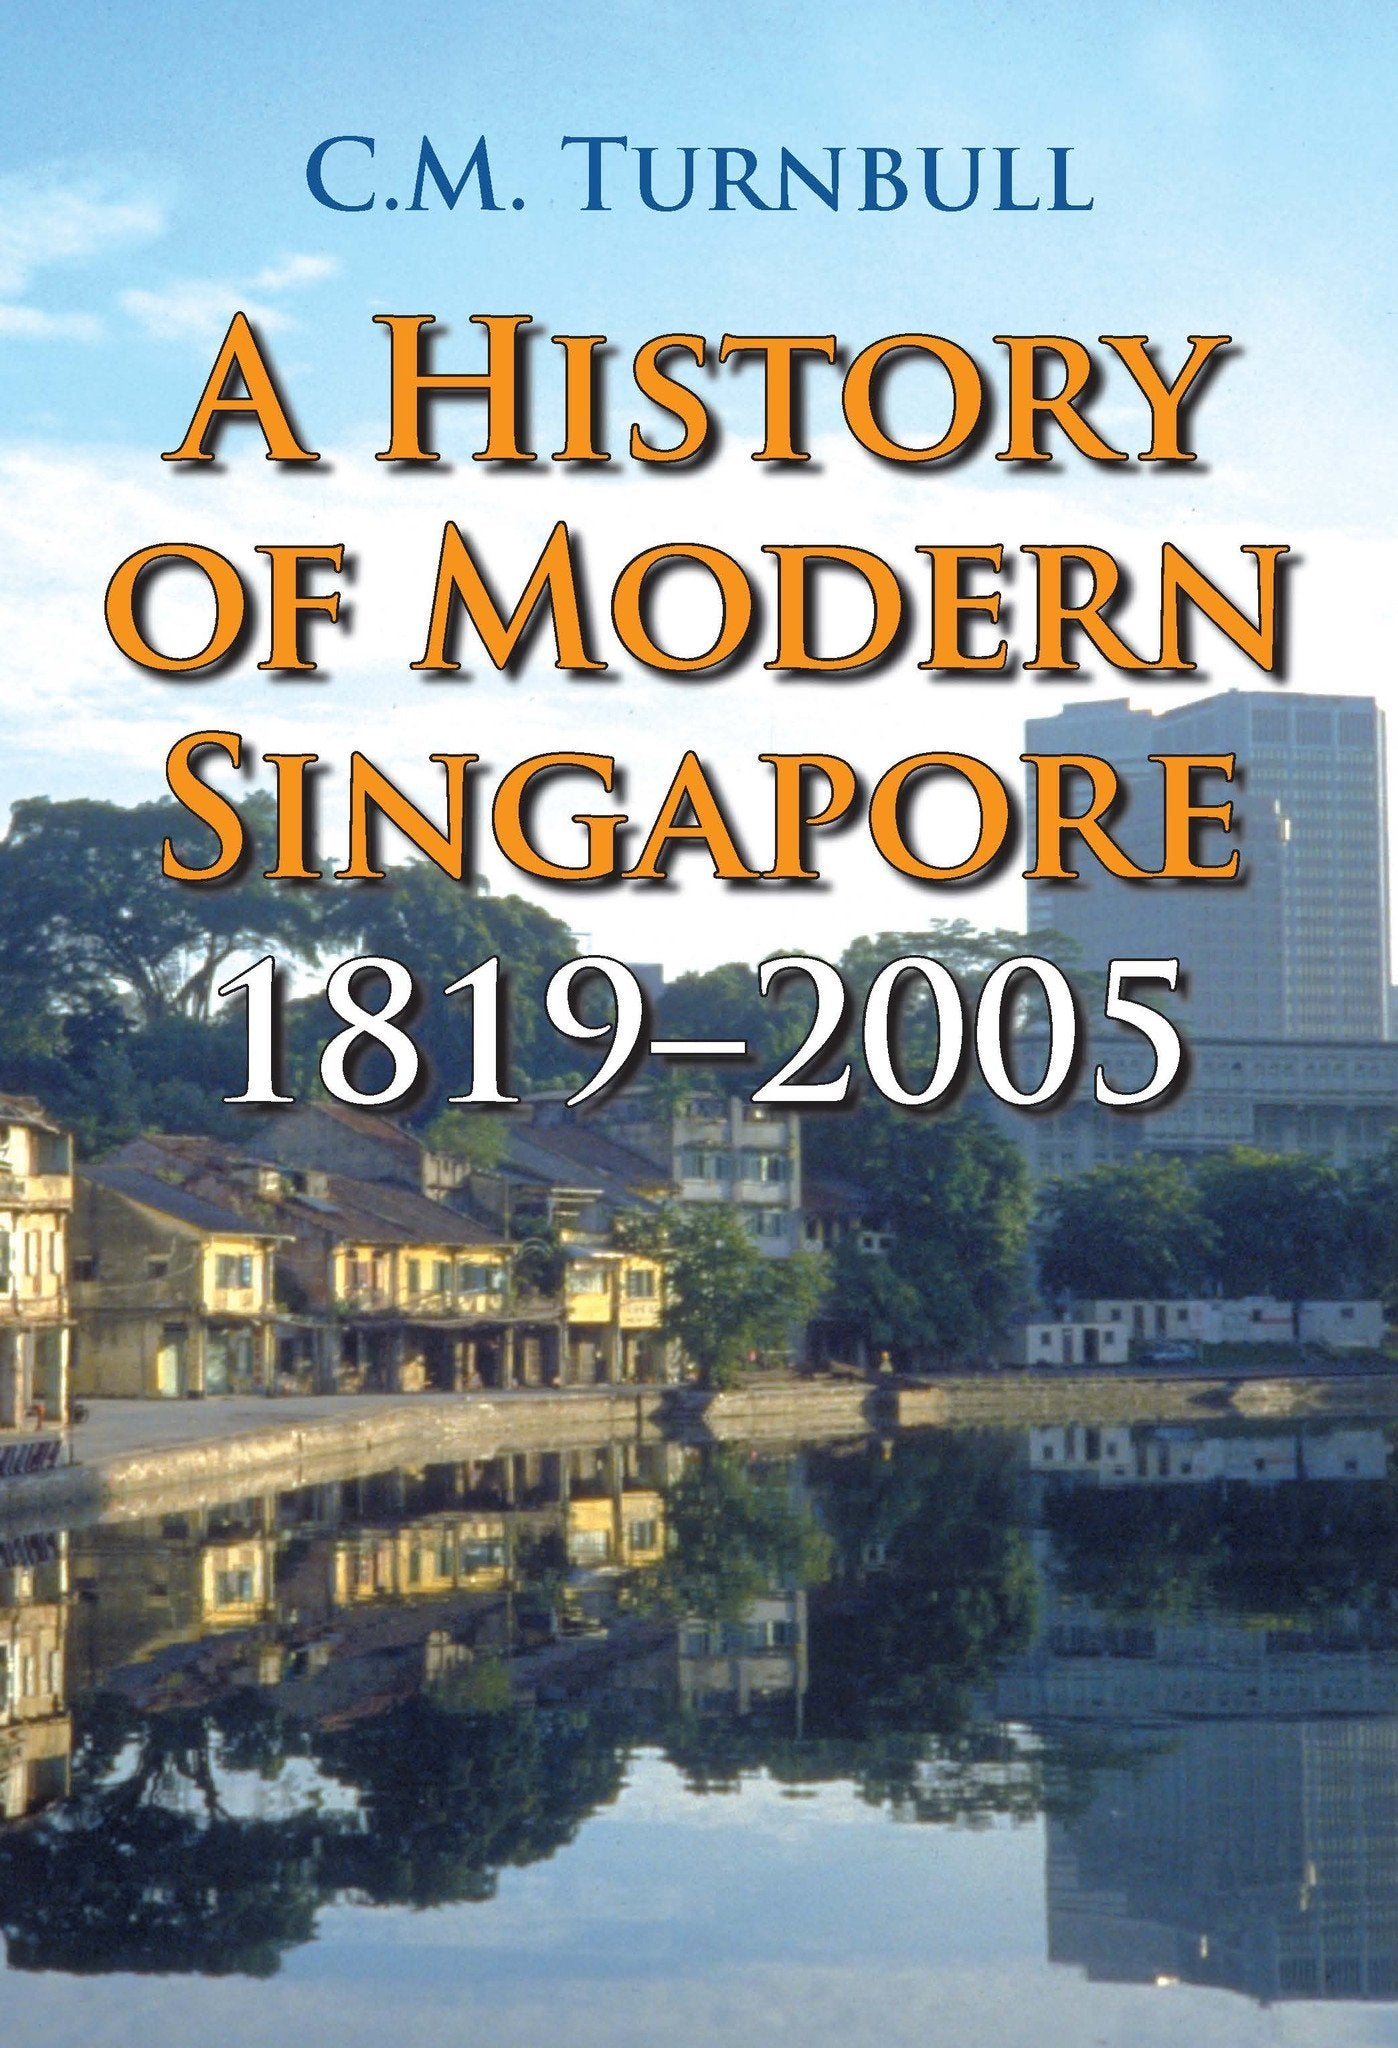 A History of Modern Singapore: 1819 - 2005